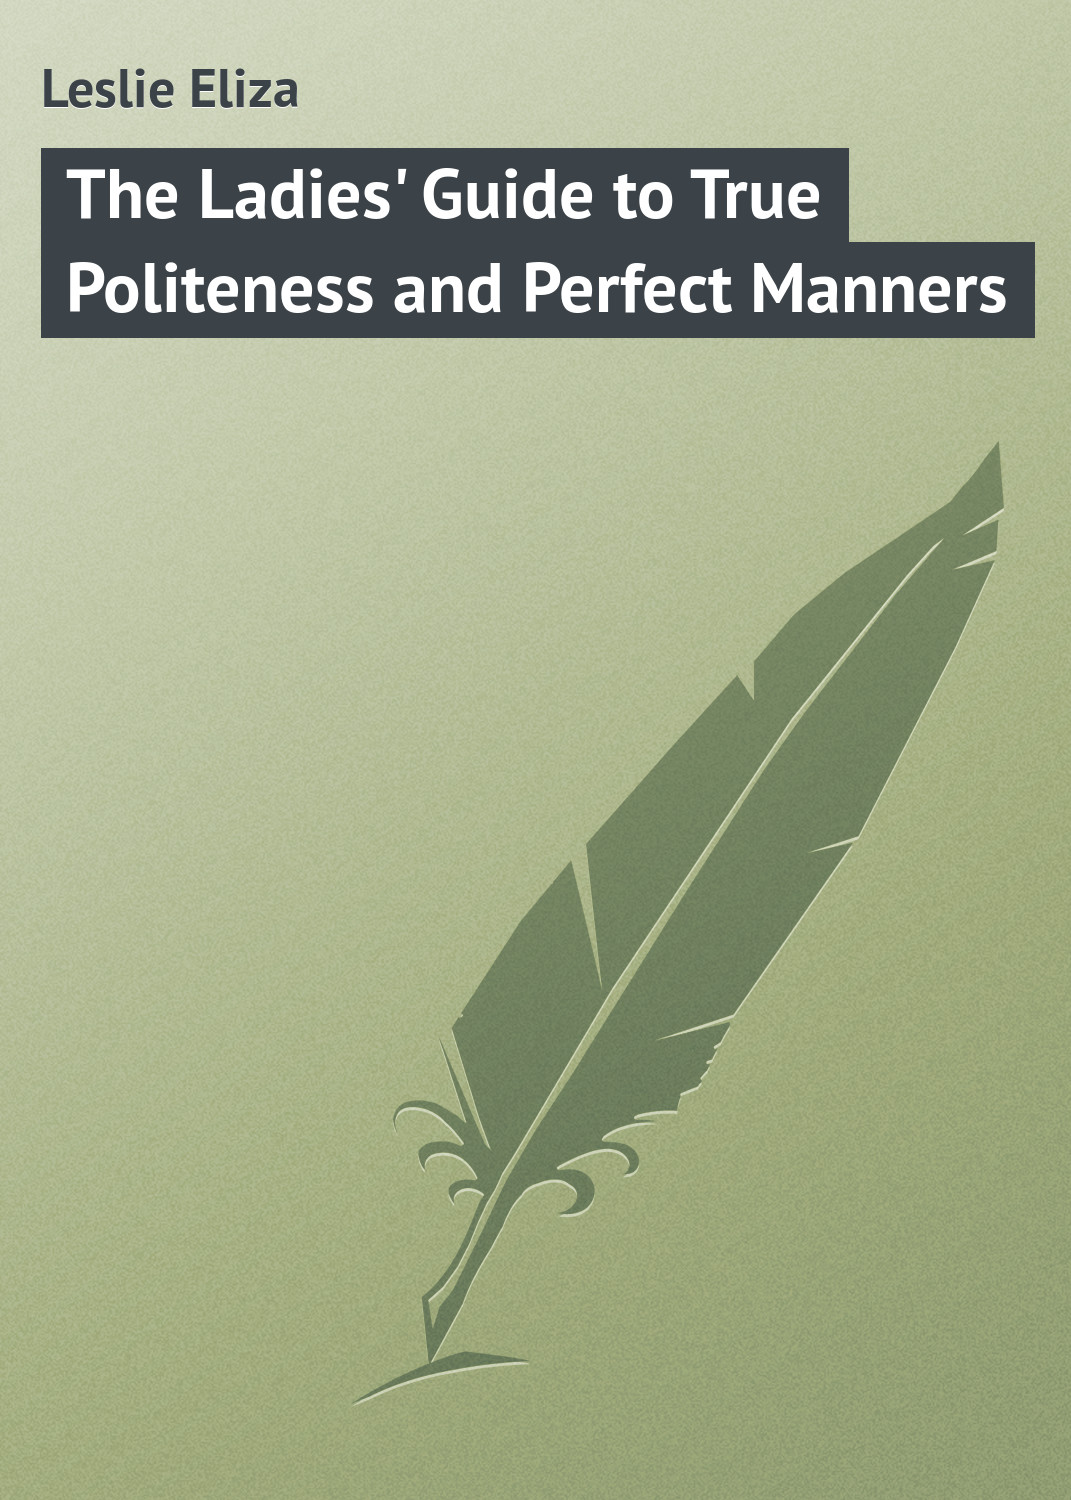 The Ladies'Guide to True Politeness and Perfect Manners